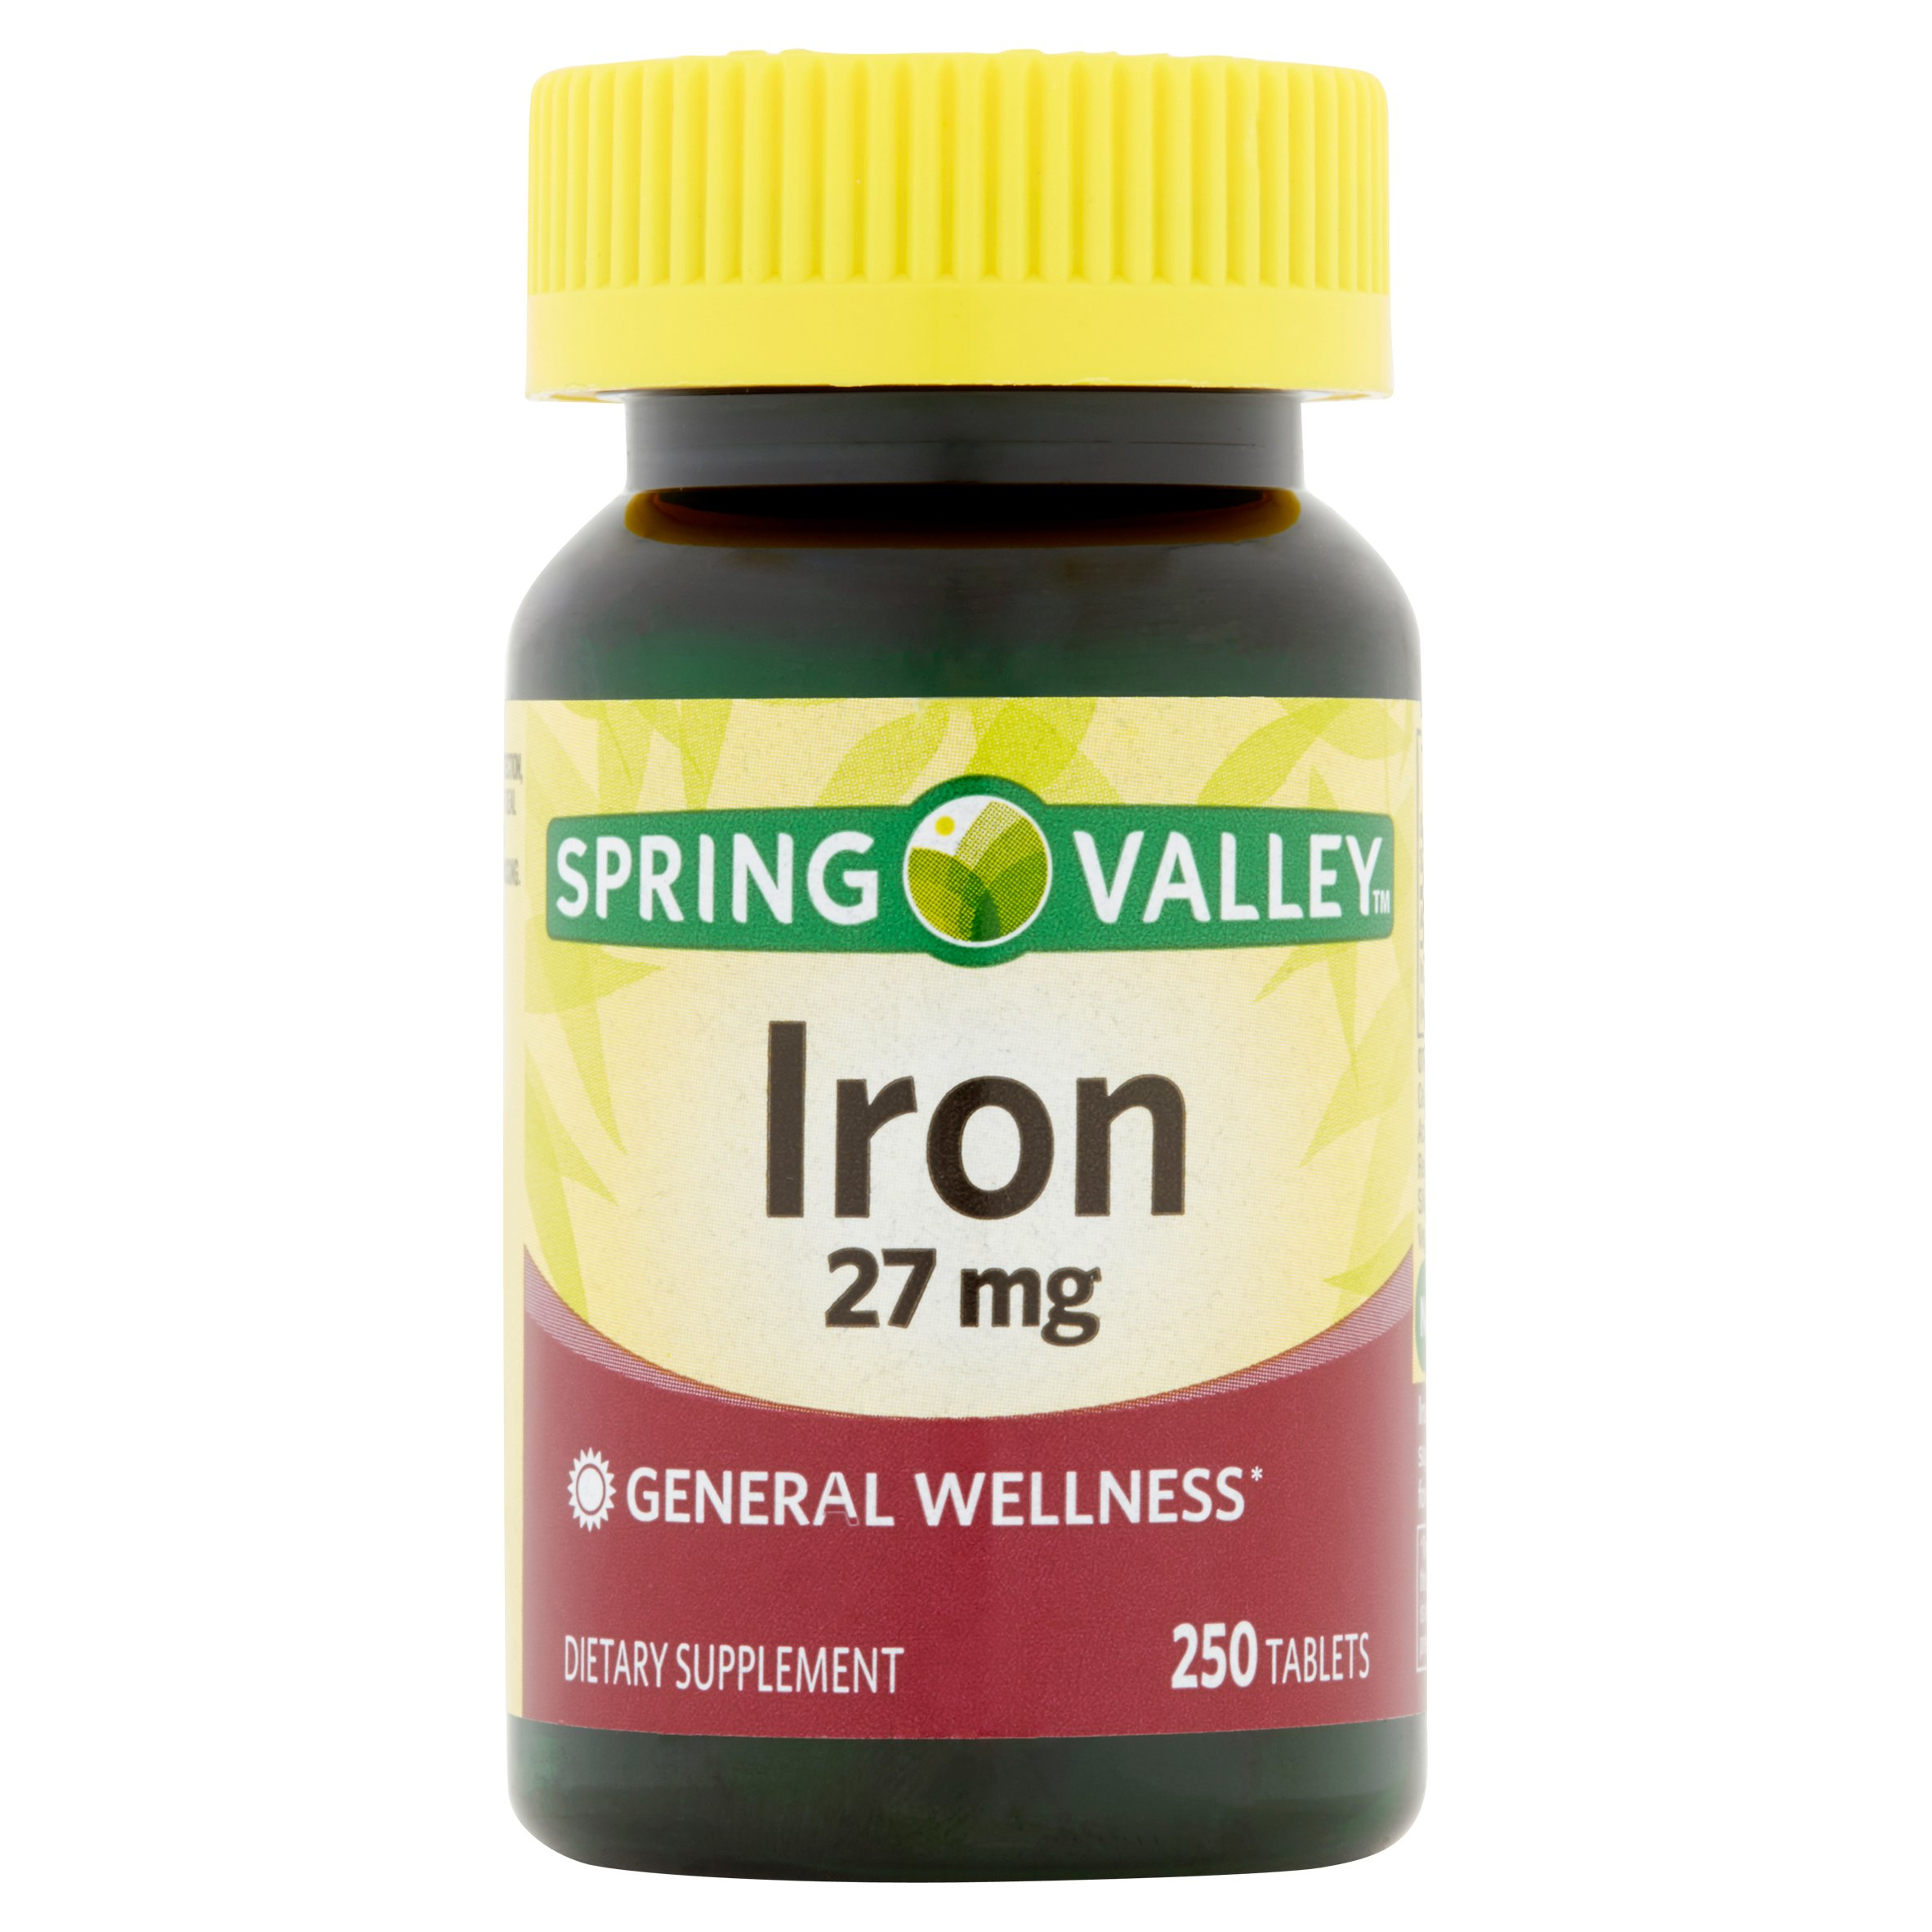 Spring Valley Iron Supplement Tablets, 27 mg, 250 Ct